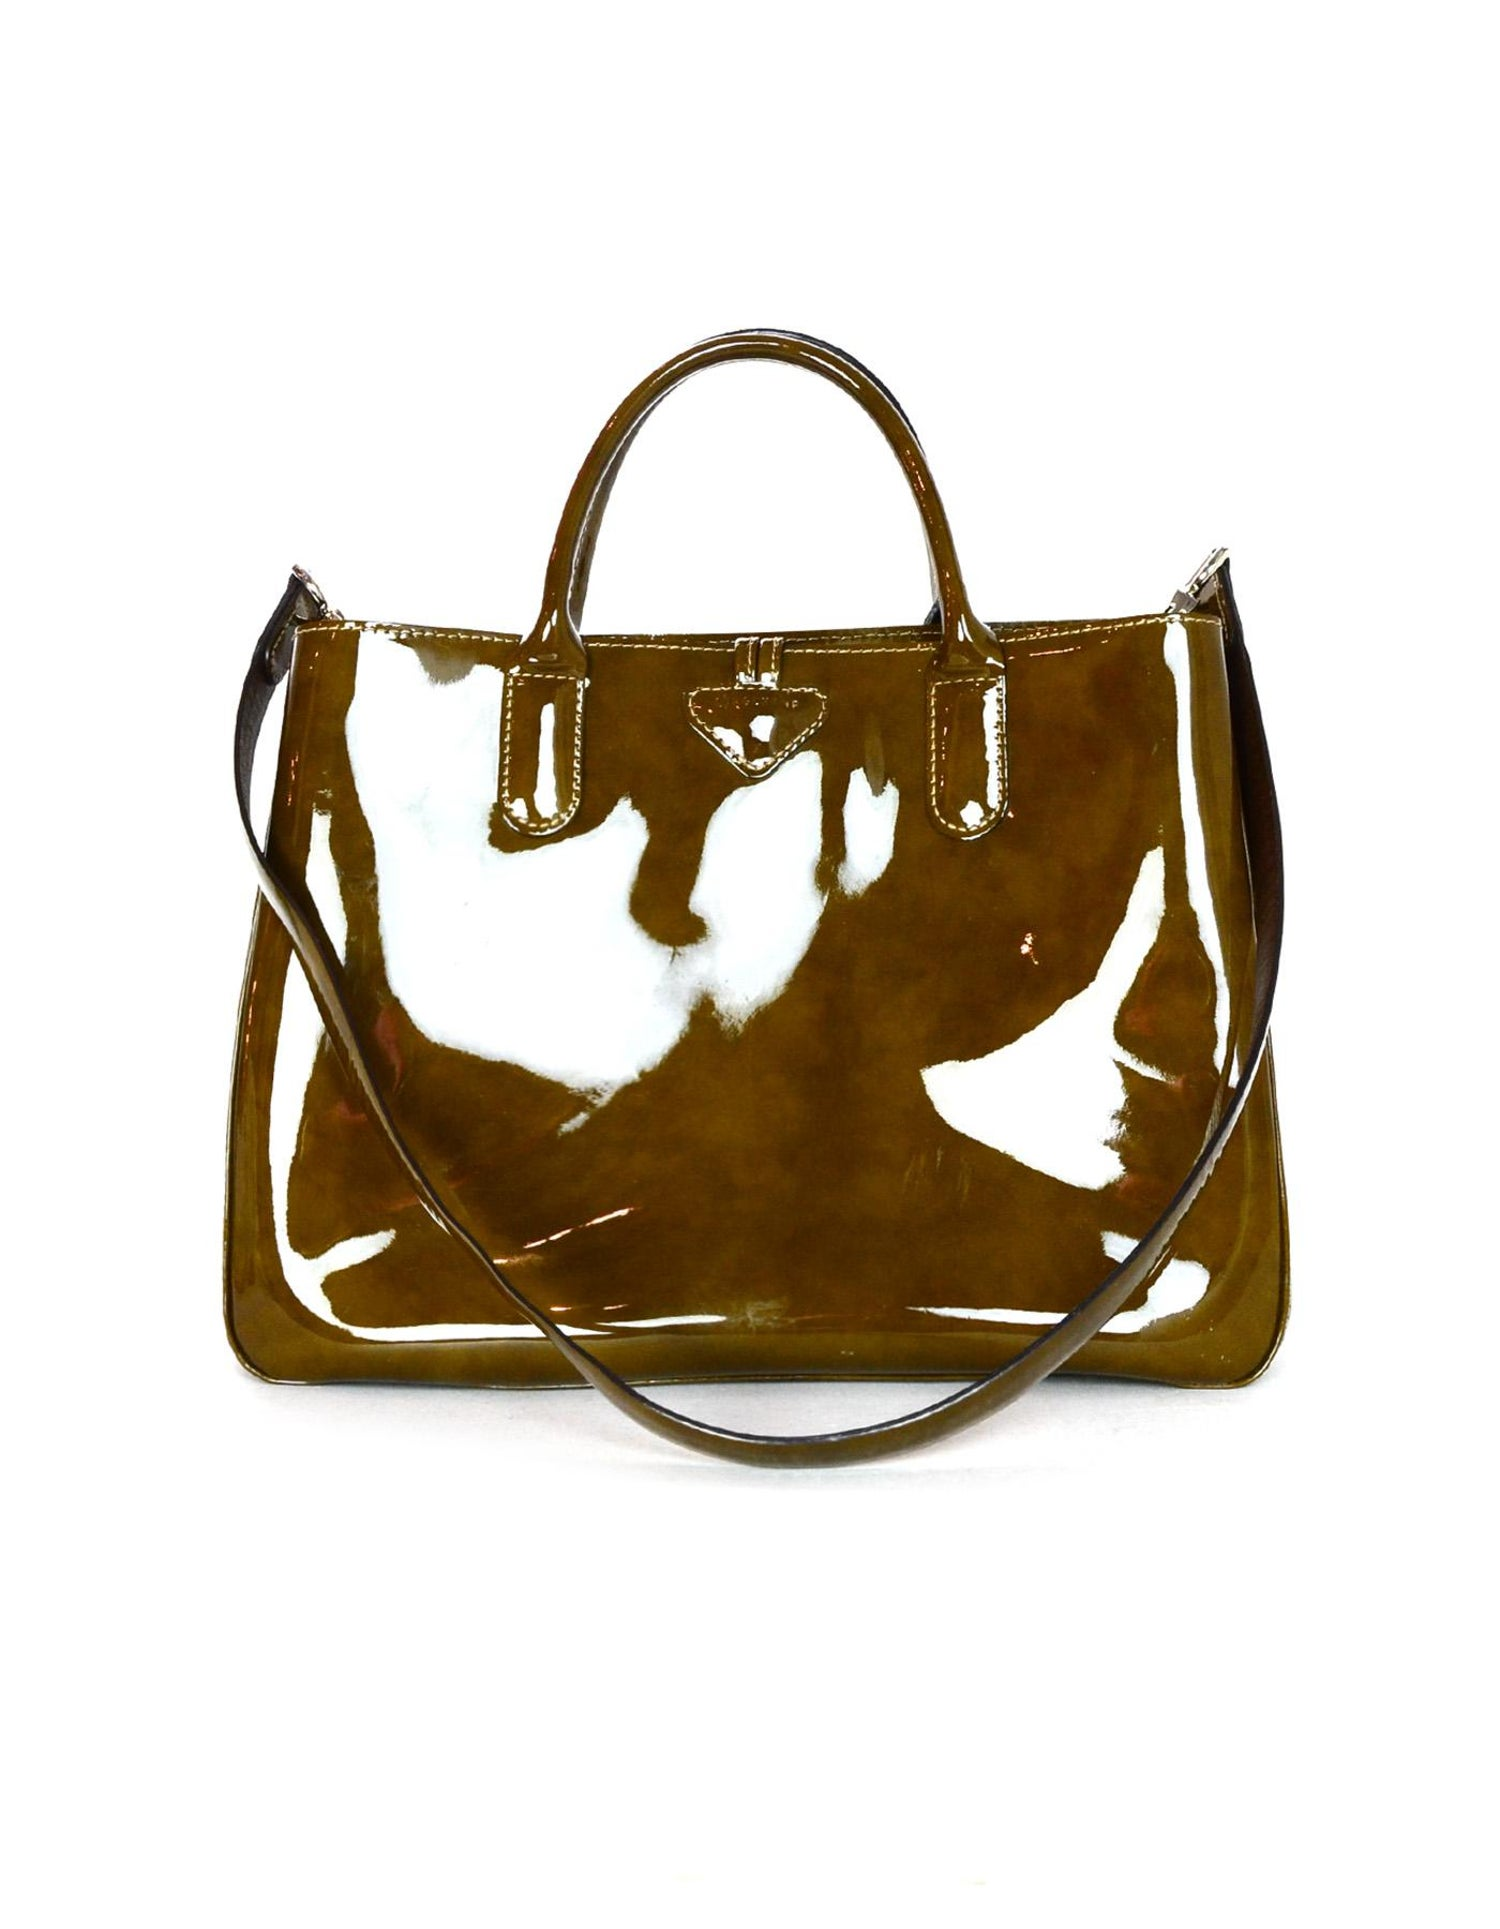 Longchamp Brown Tortoise Patent Leather Medium Roseau Toggle Tote Bag W   Strap For Sale at 1stdibs 9973736b2a32b